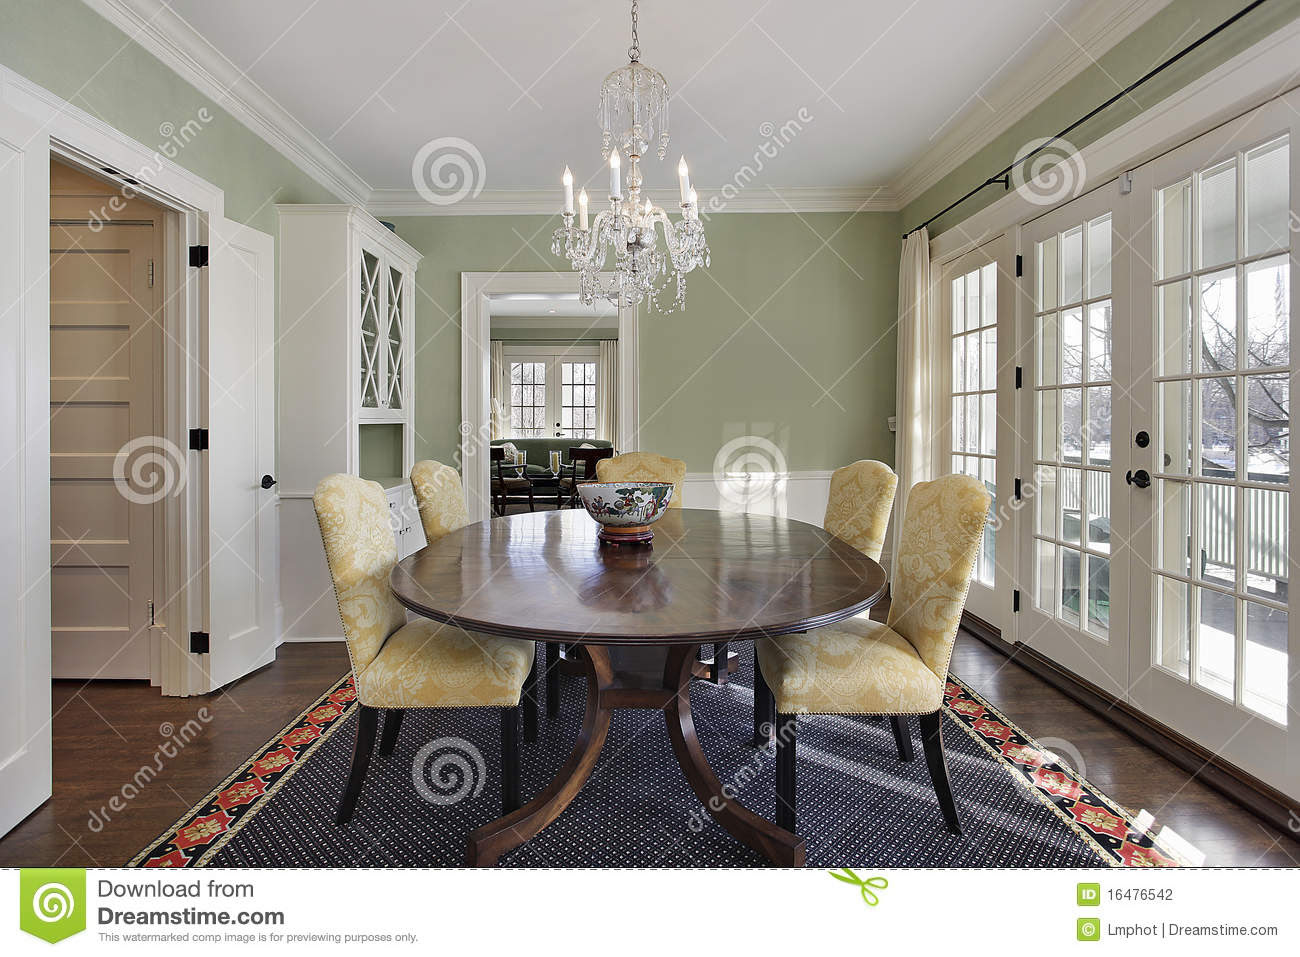 Dining Room With Green Walls Stock Photography - Image: 16476542